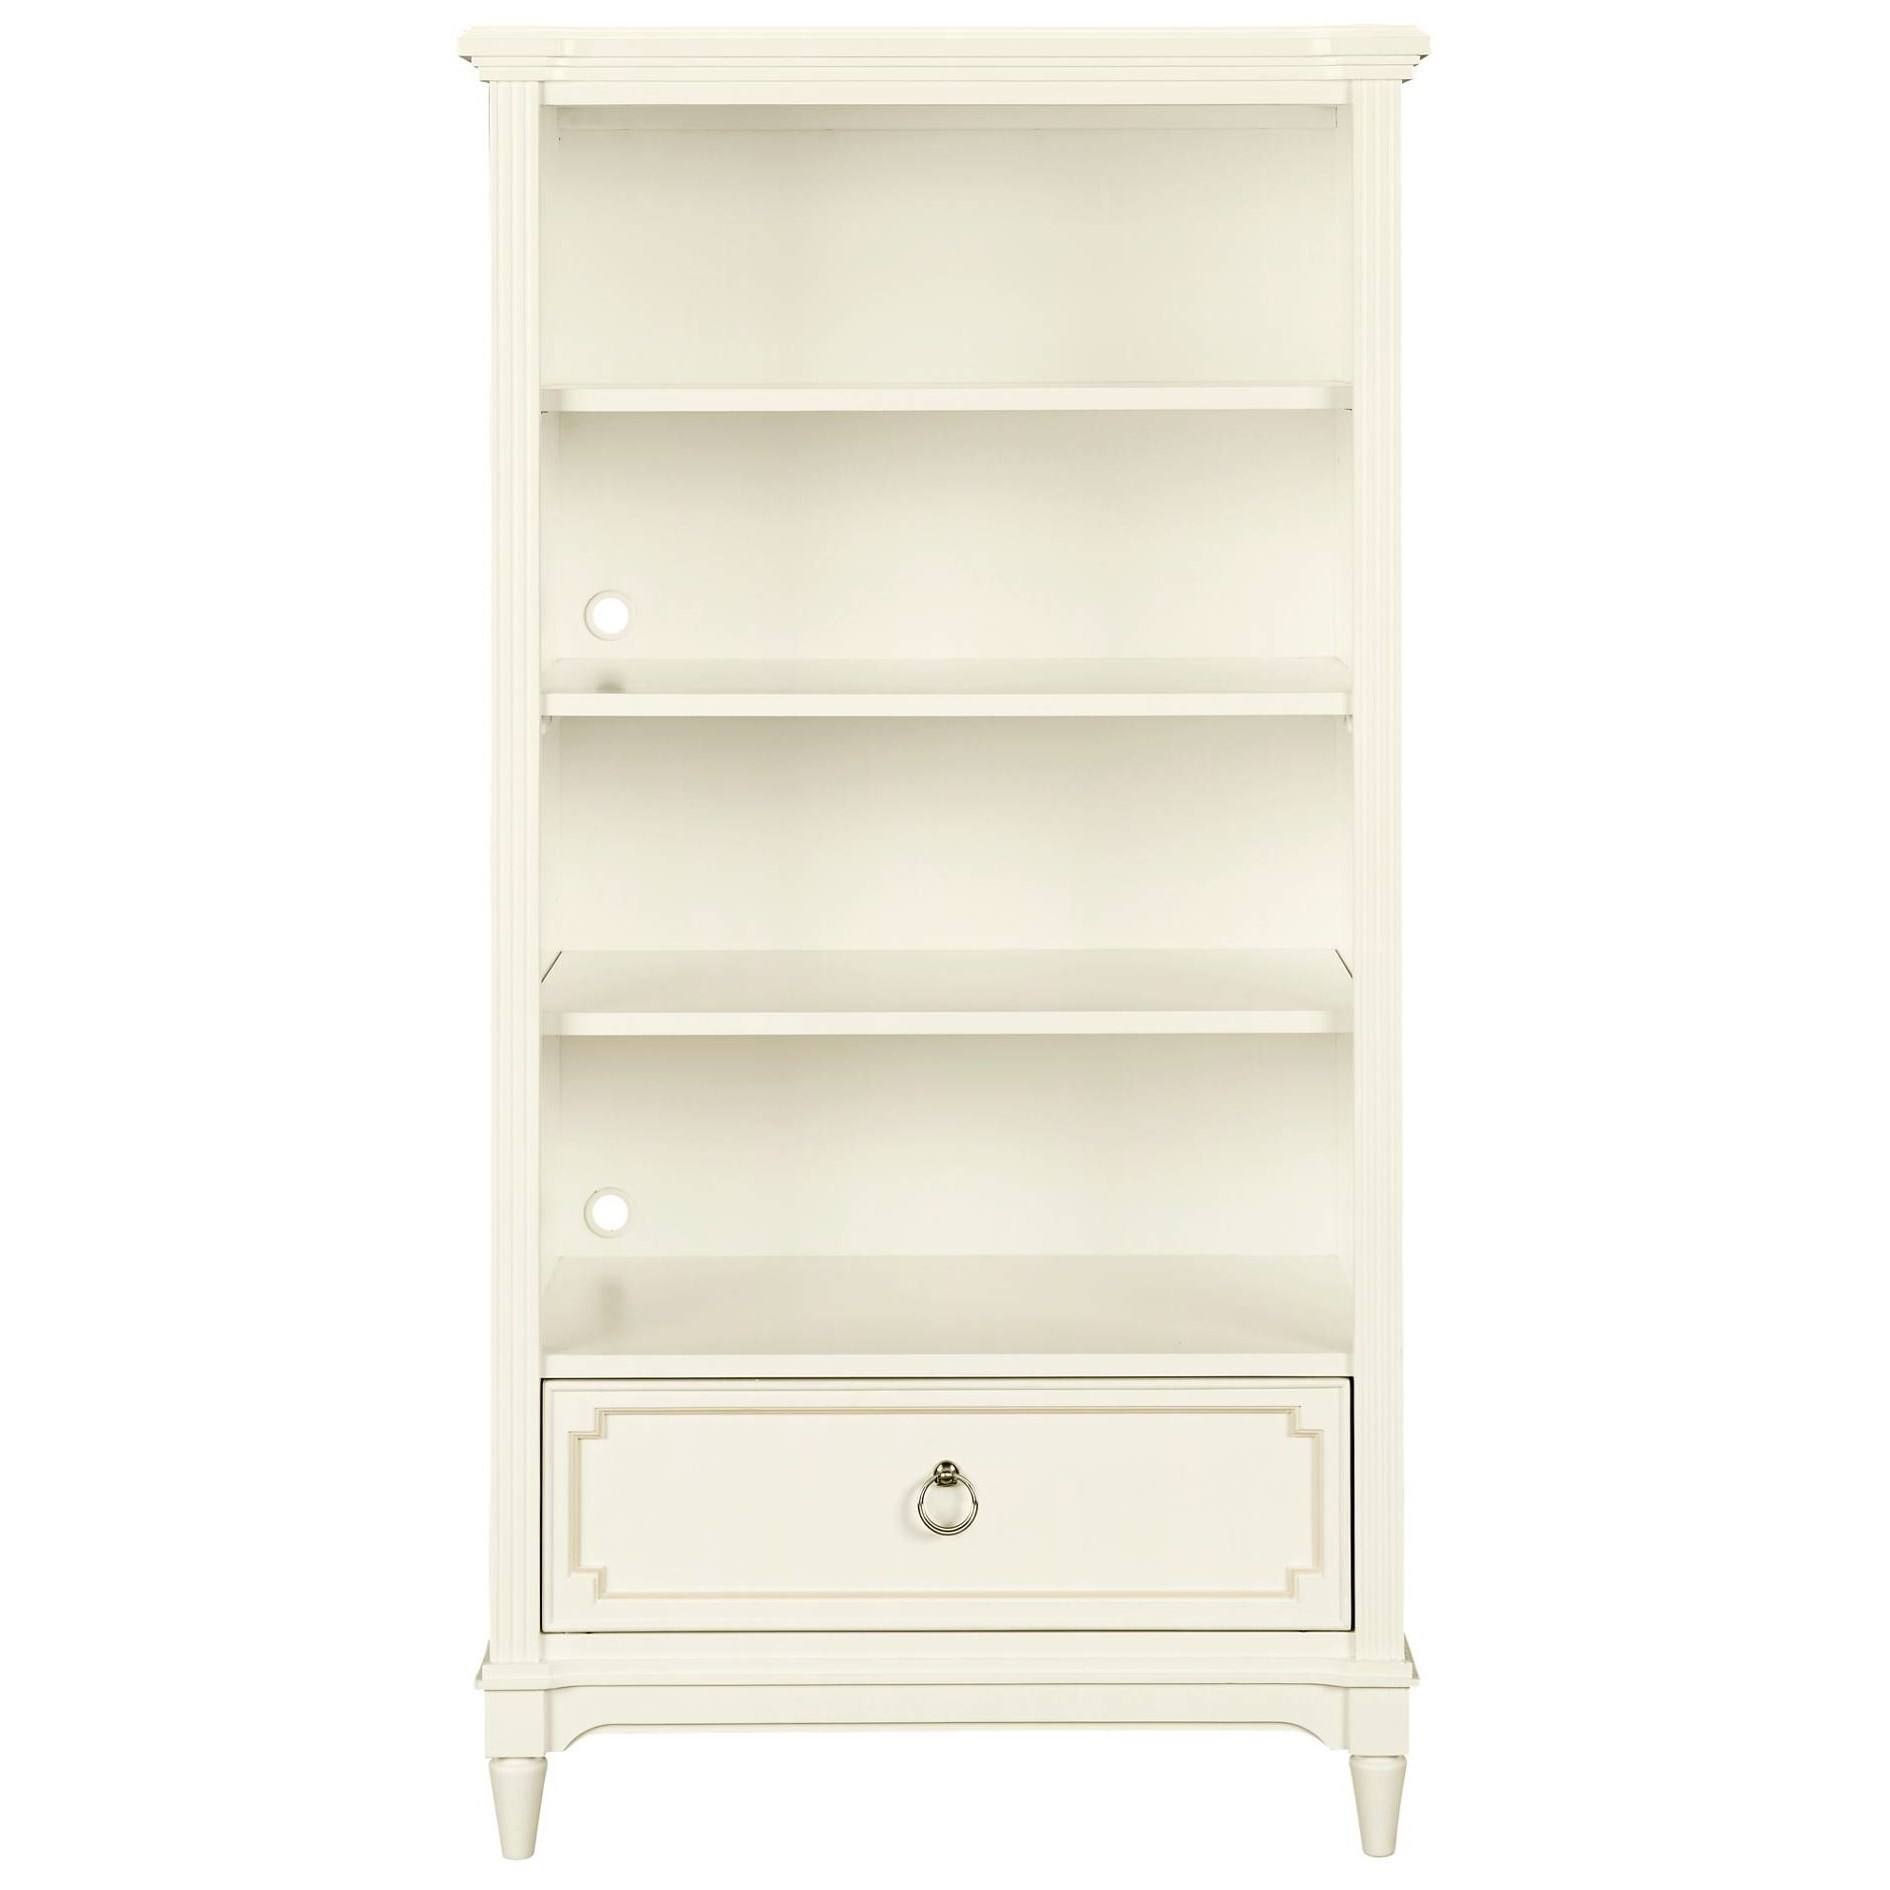 Stone & Leigh Furniture Clementine Court Bookcase - Item Number: 537-23-13